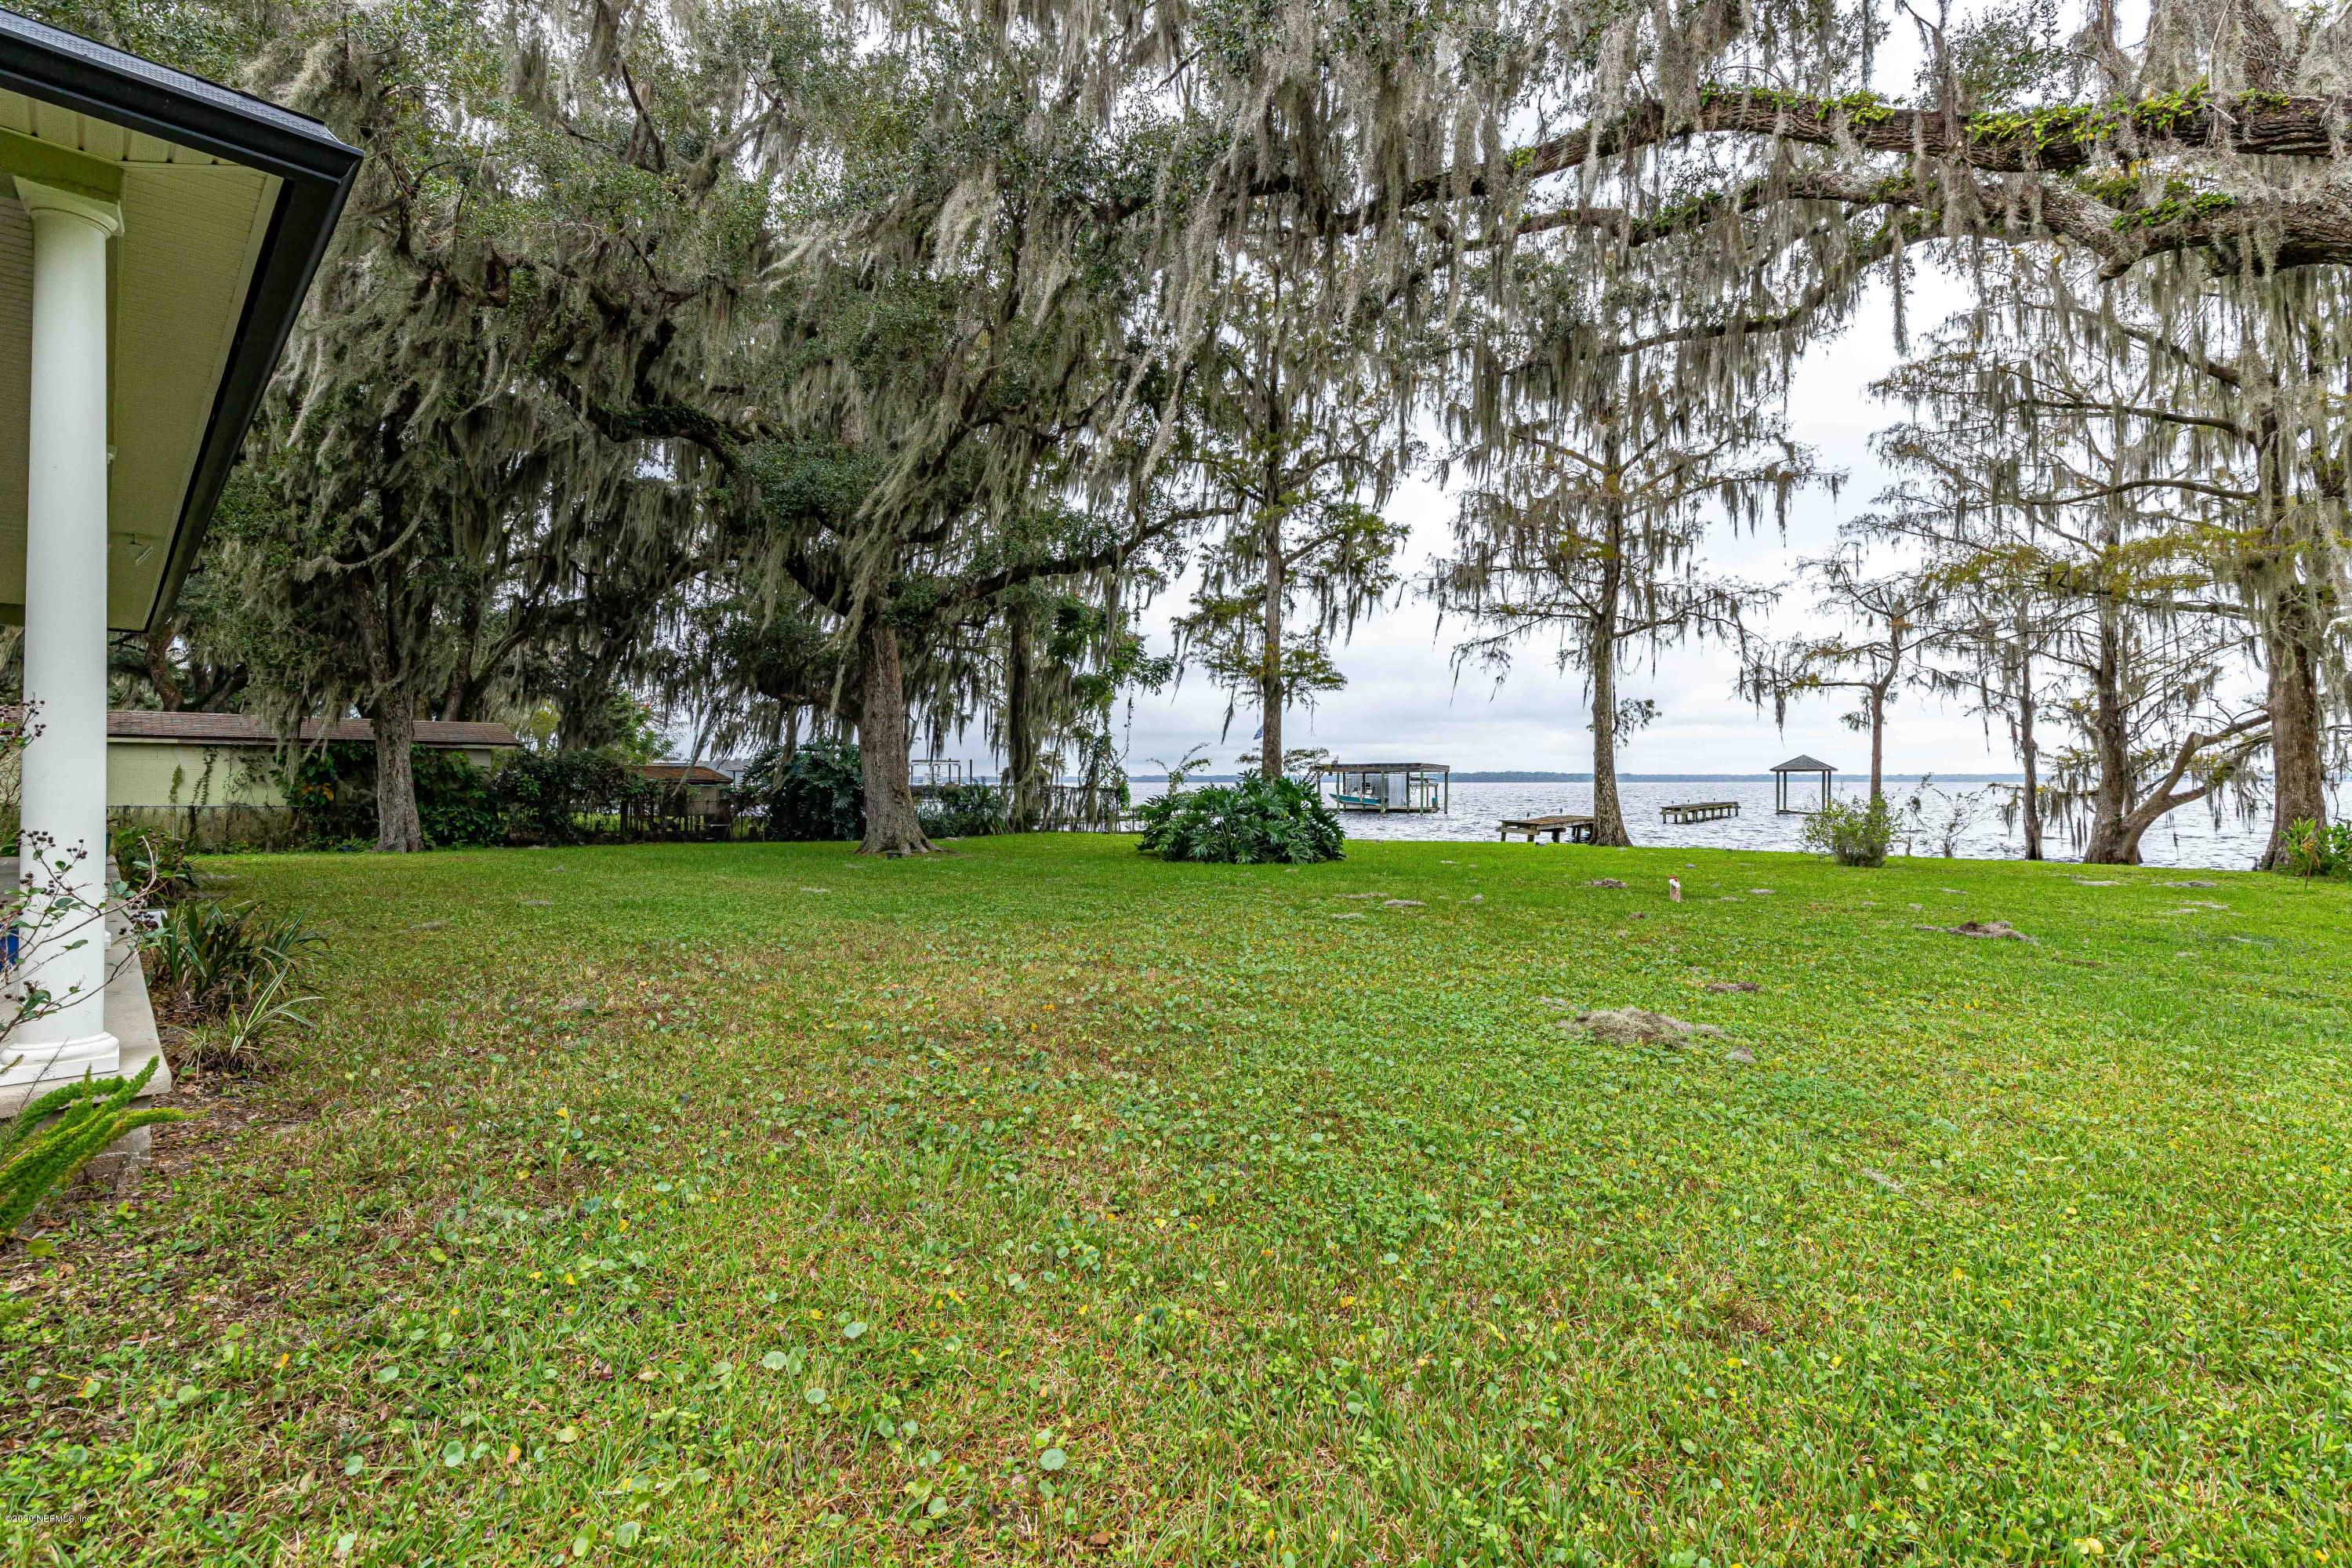 9555 COUNTY RD 13, ST AUGUSTINE, FLORIDA 32092, 4 Bedrooms Bedrooms, ,3 BathroomsBathrooms,Residential,For sale,COUNTY RD 13,1082502